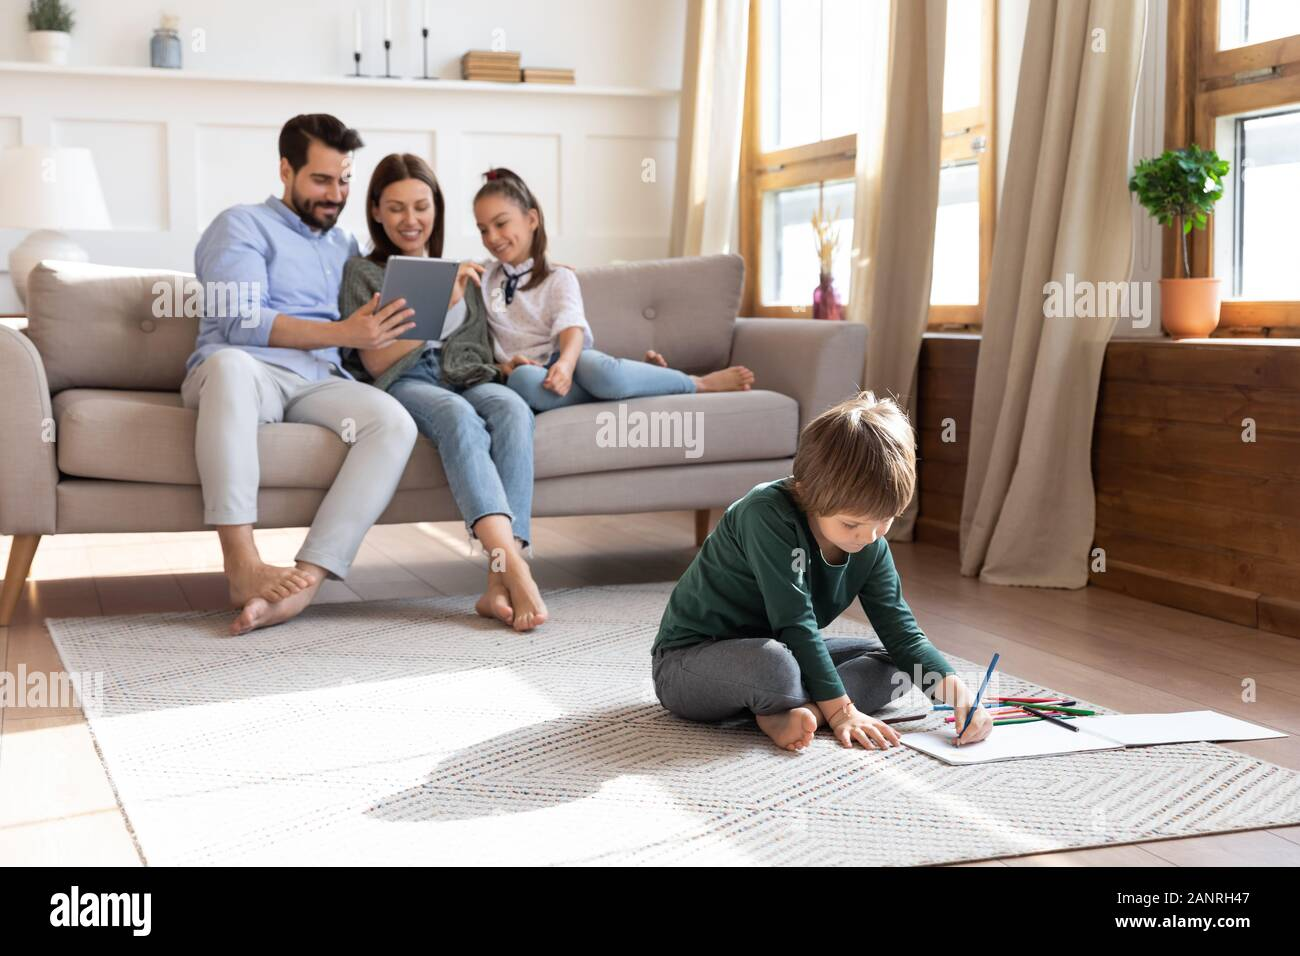 Young family with small kids relax in living room Stock Photo - Alamy